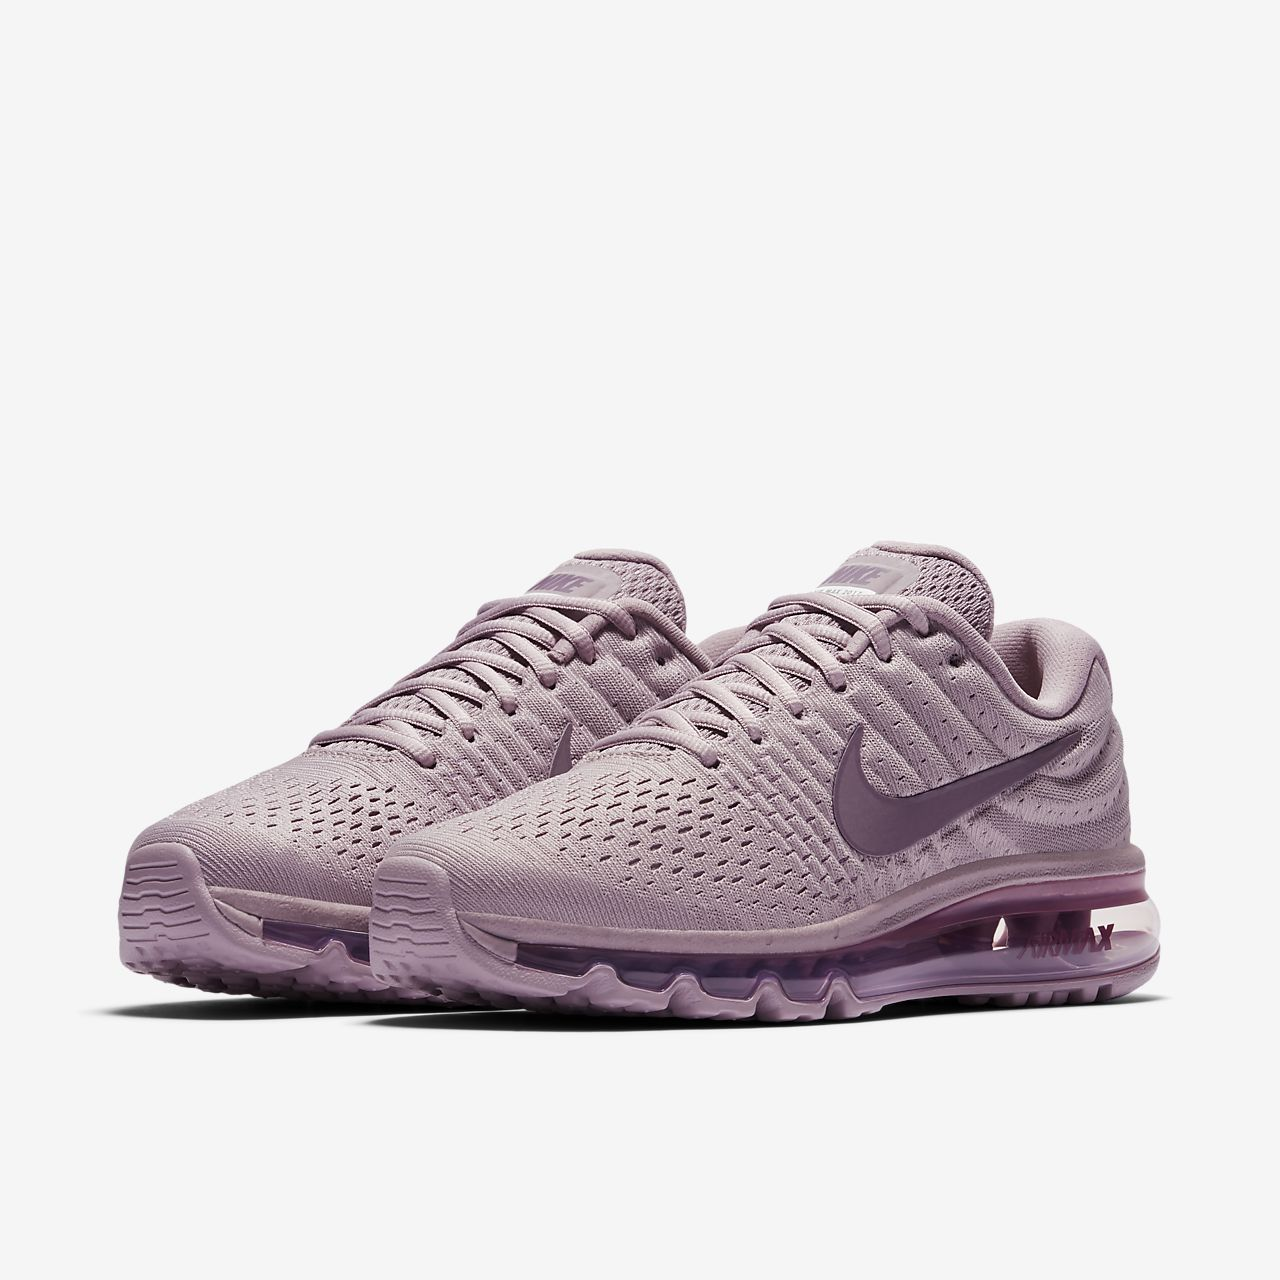 hot sale online c803c 78dae nike air max phoenix shoes for women